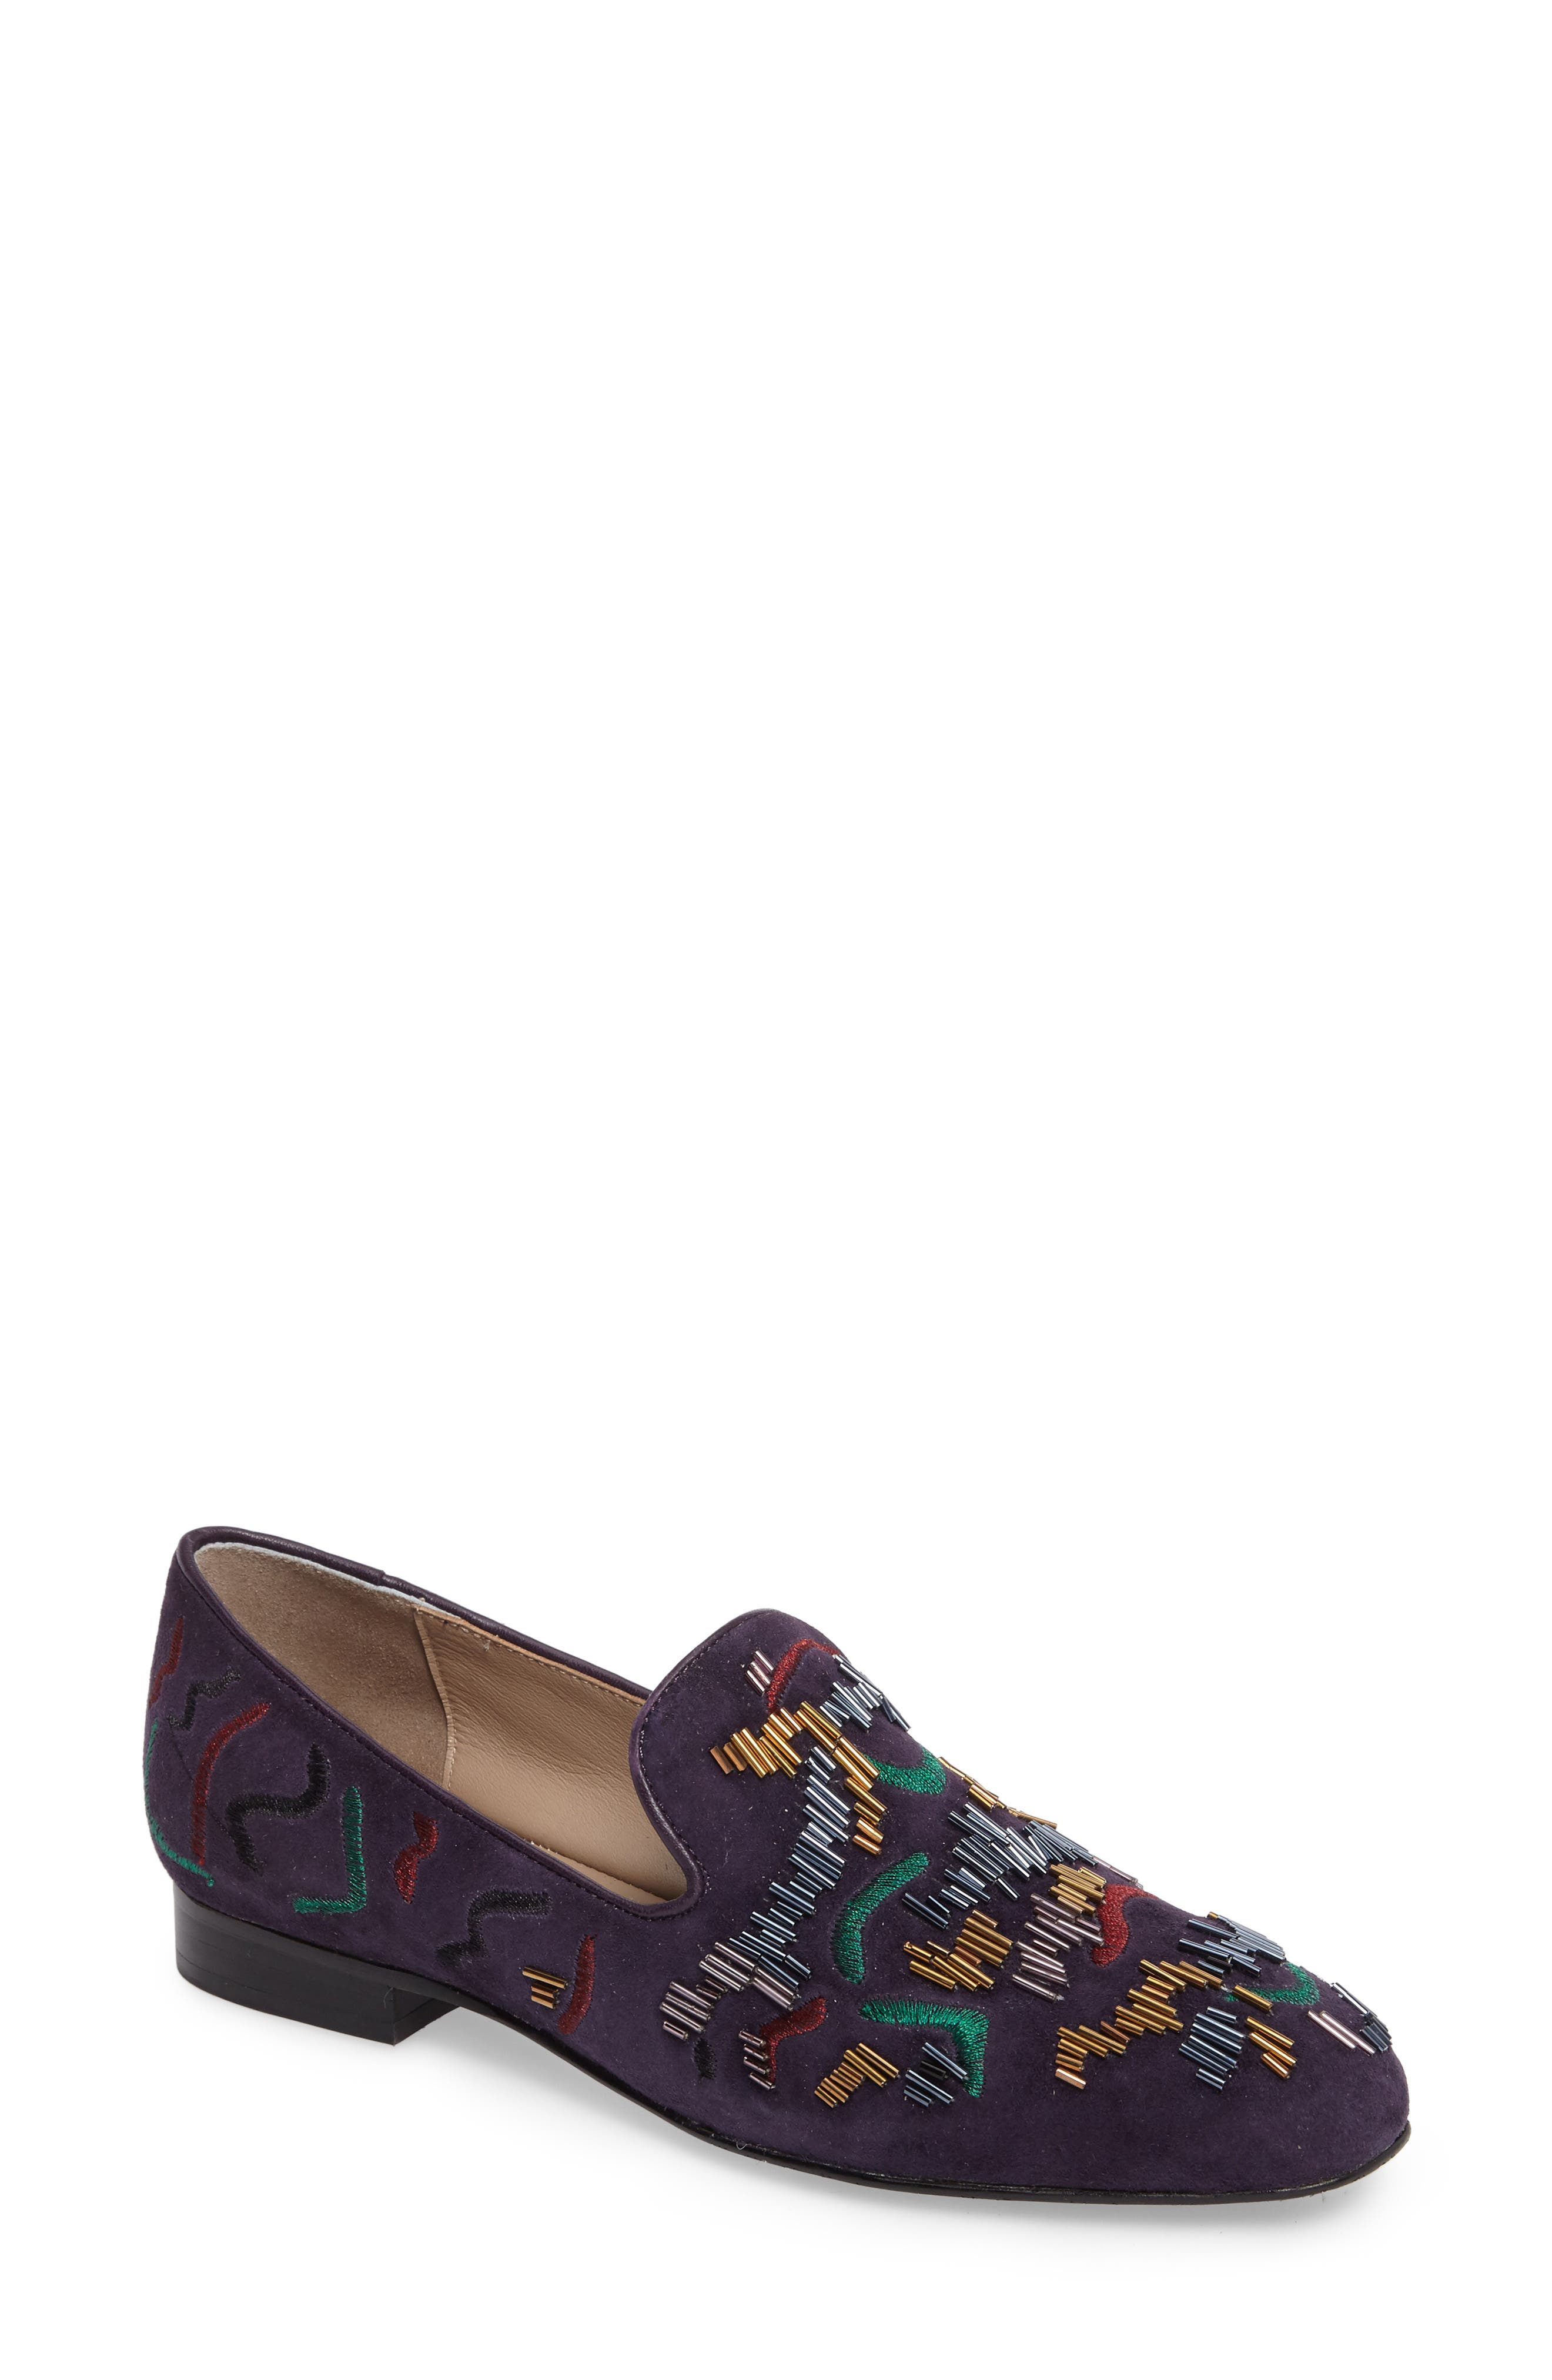 Leanne Beaded Loafer,                         Main,                         color, 654